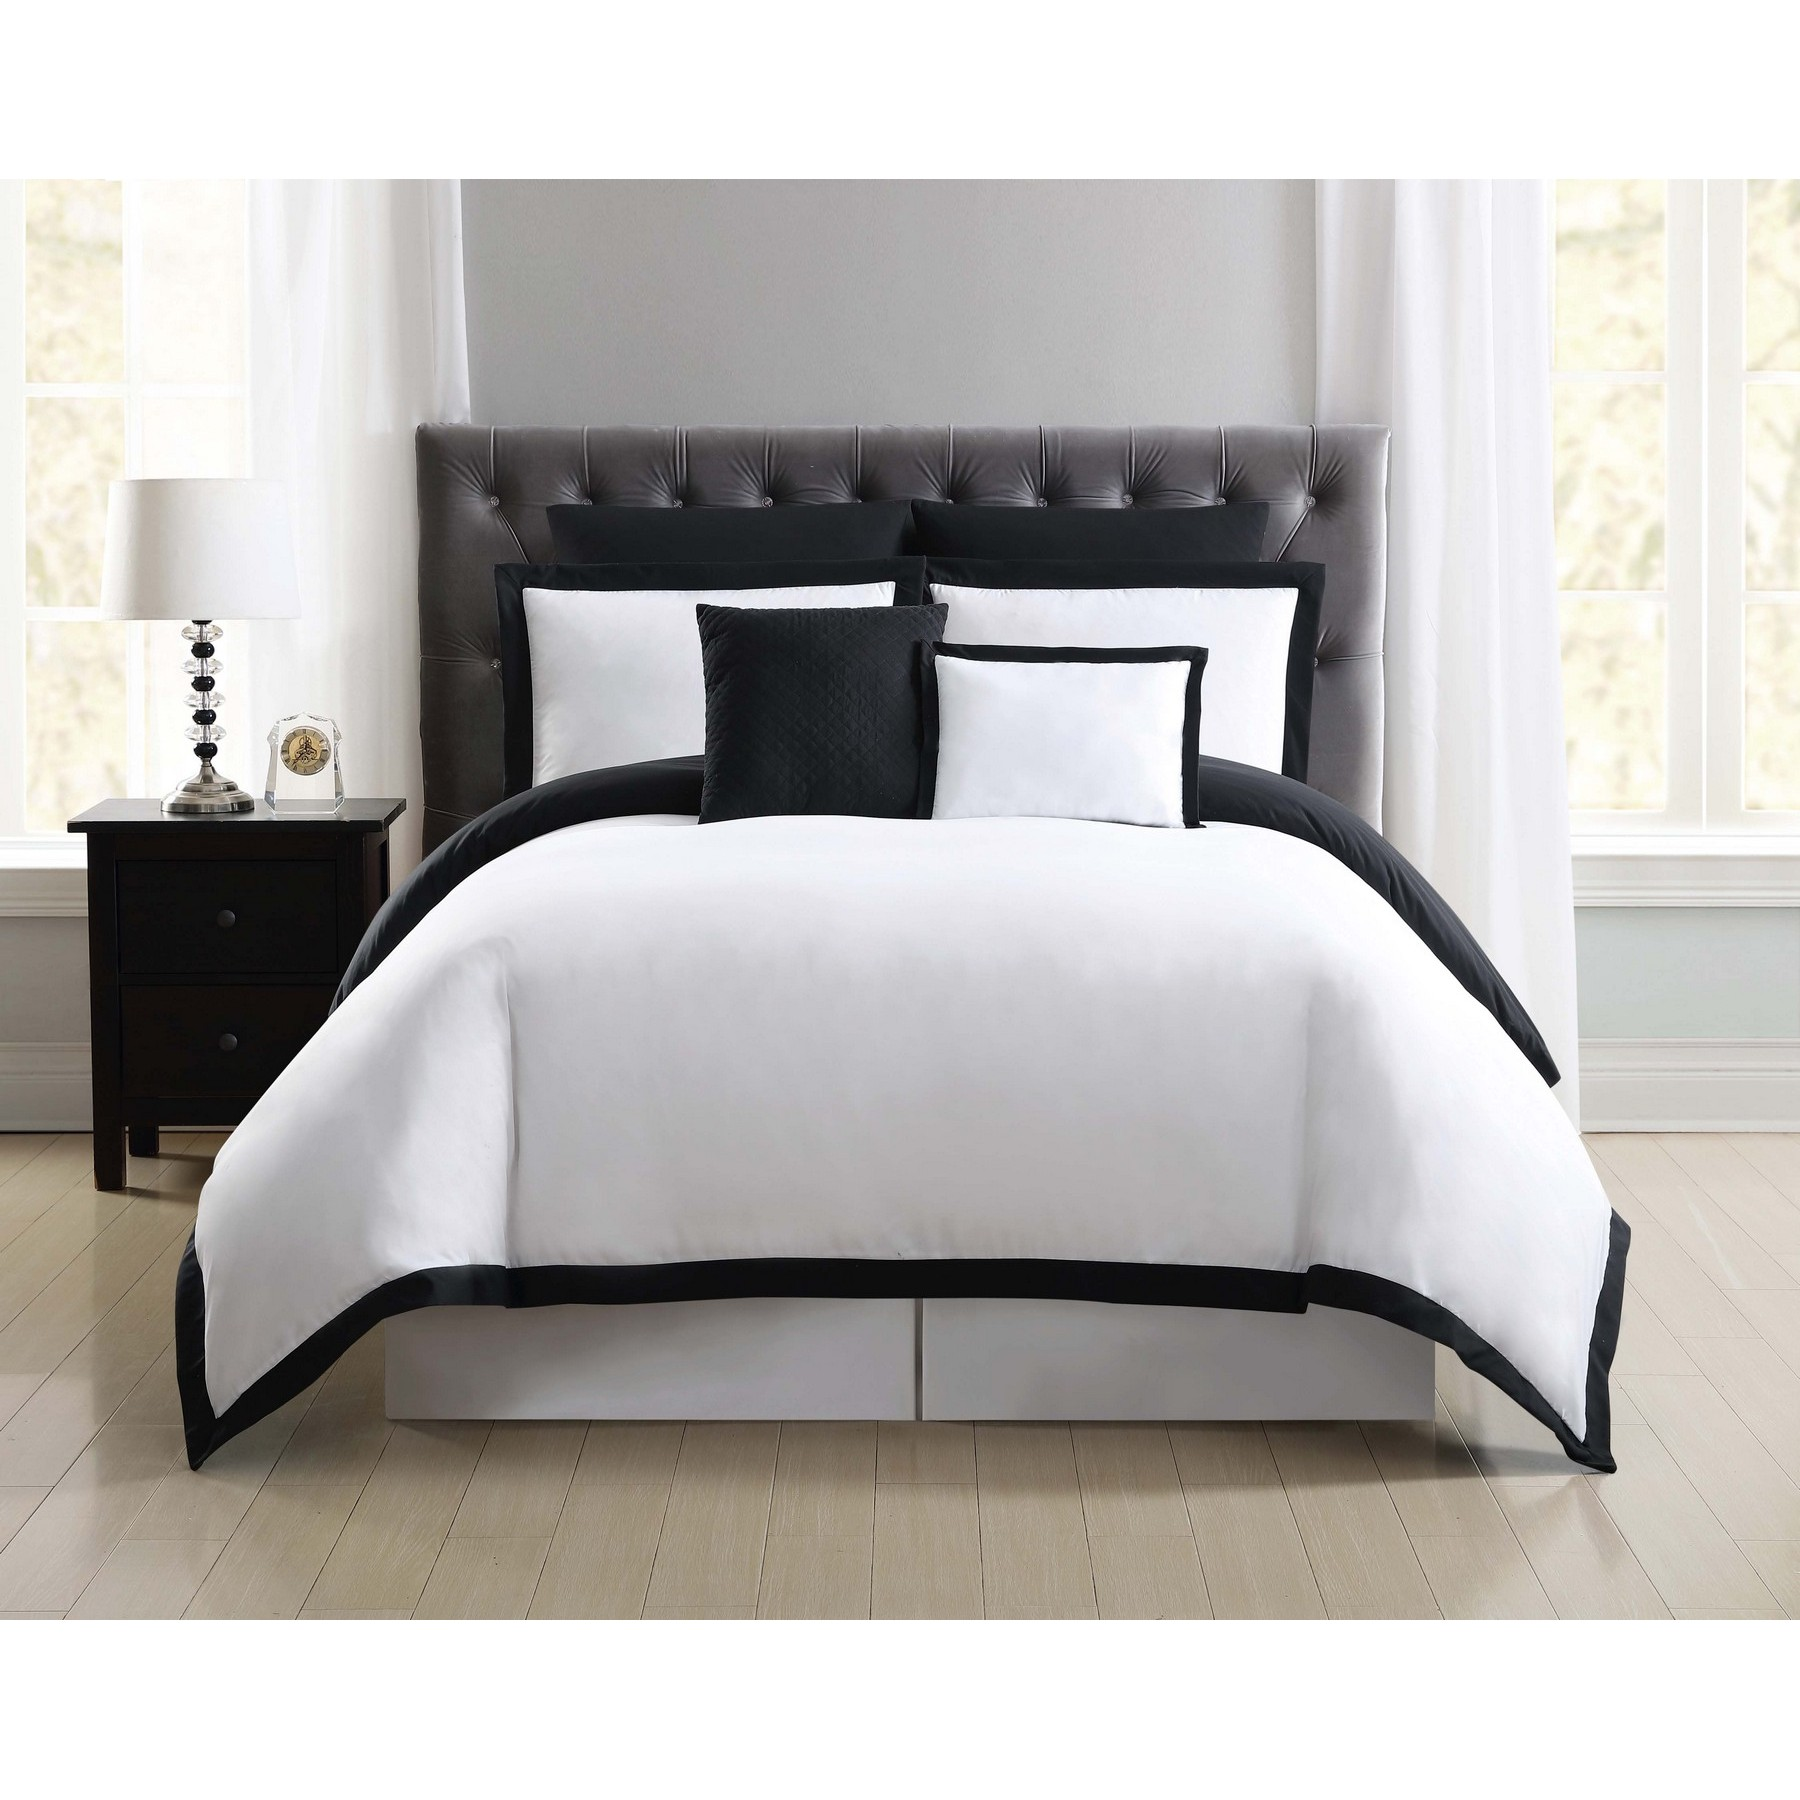 Truly Soft Everyday Hotel Border Black 7 Piece Full / Queen Duvet Set